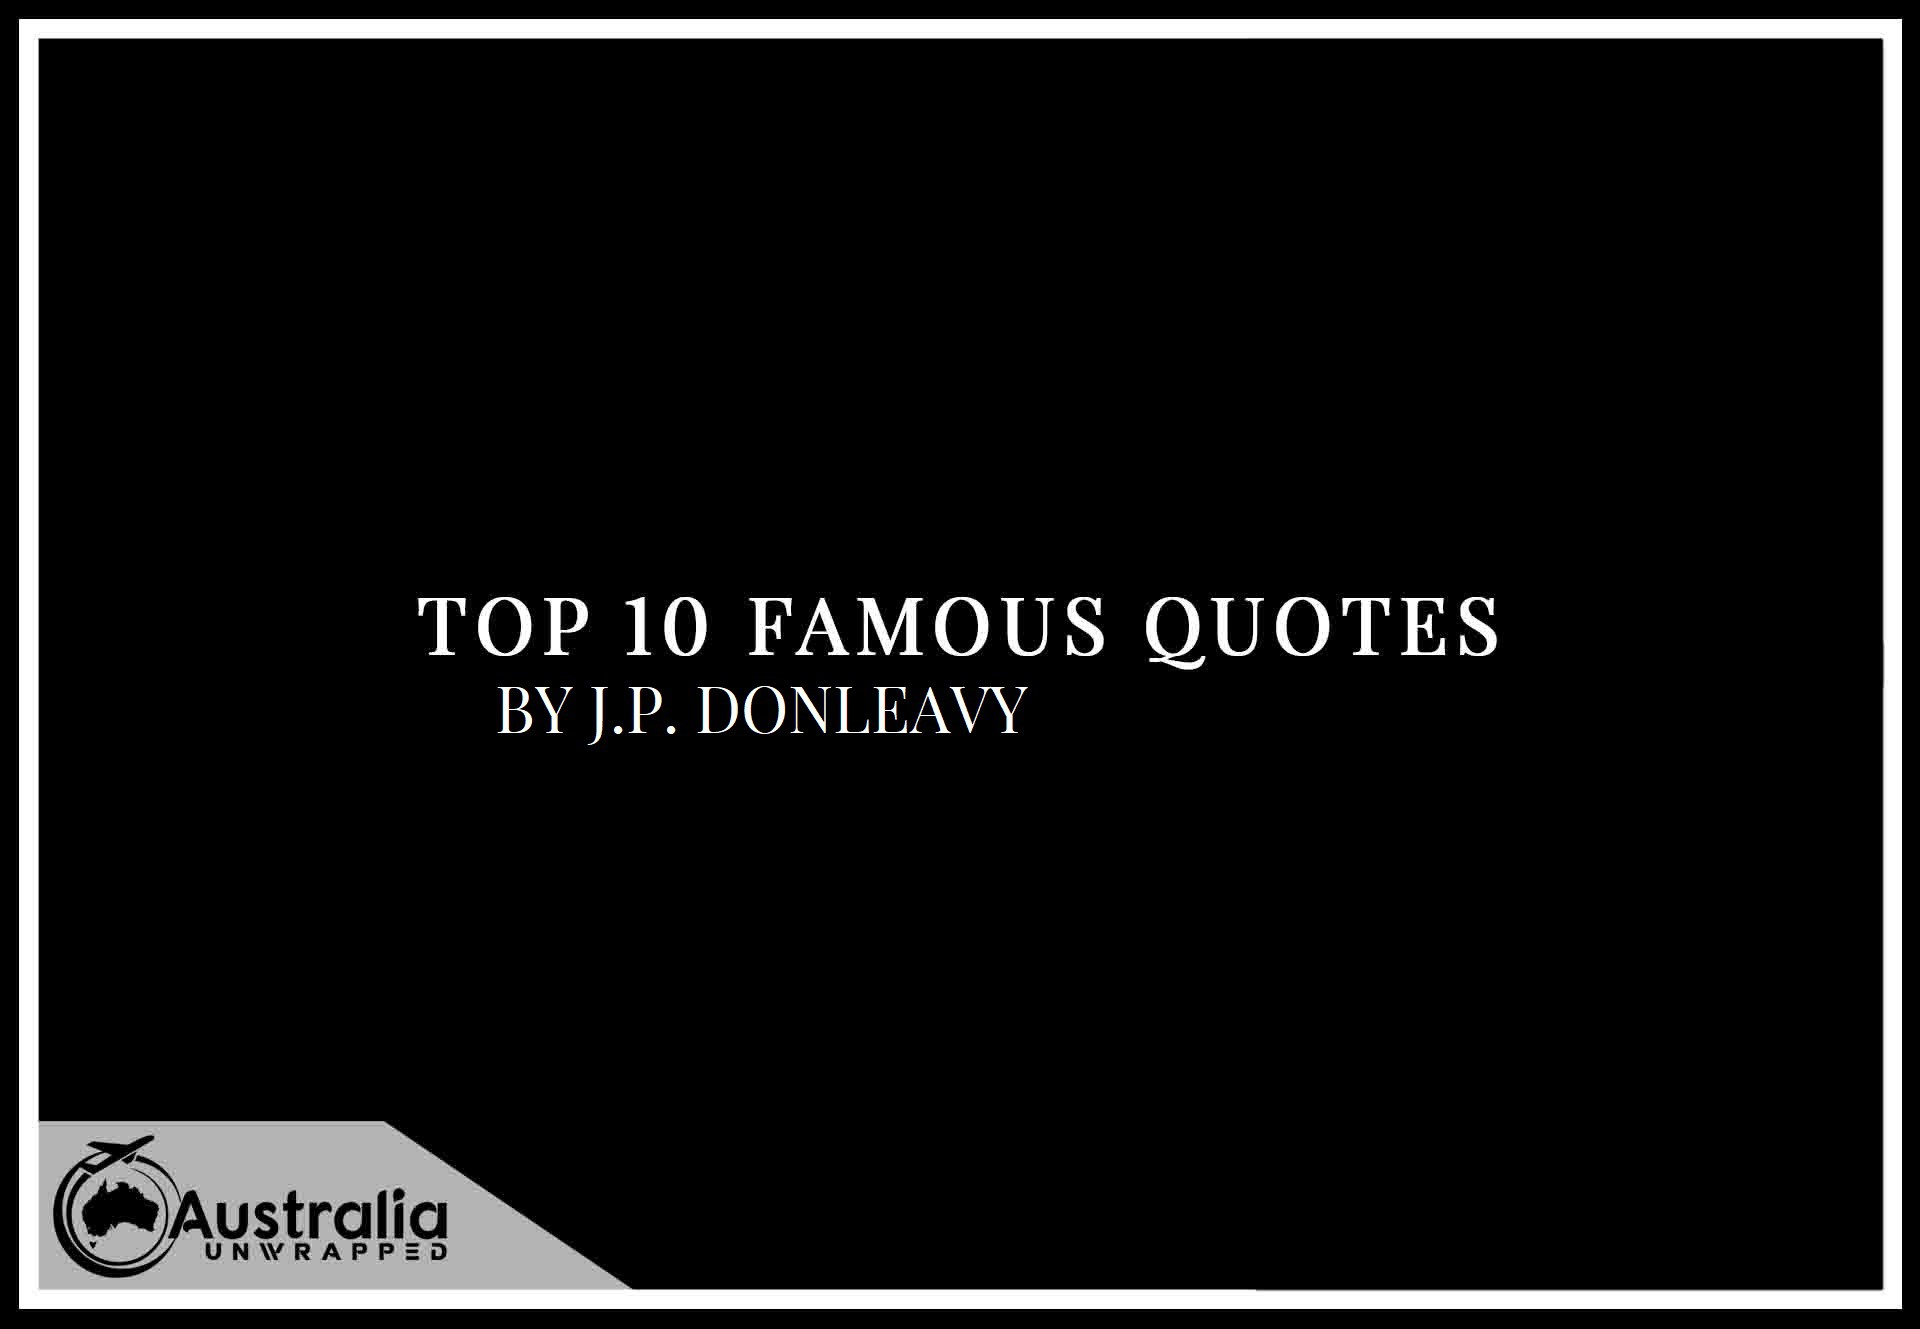 Top 10 Famous Quotes by Author J.P. Donleavy